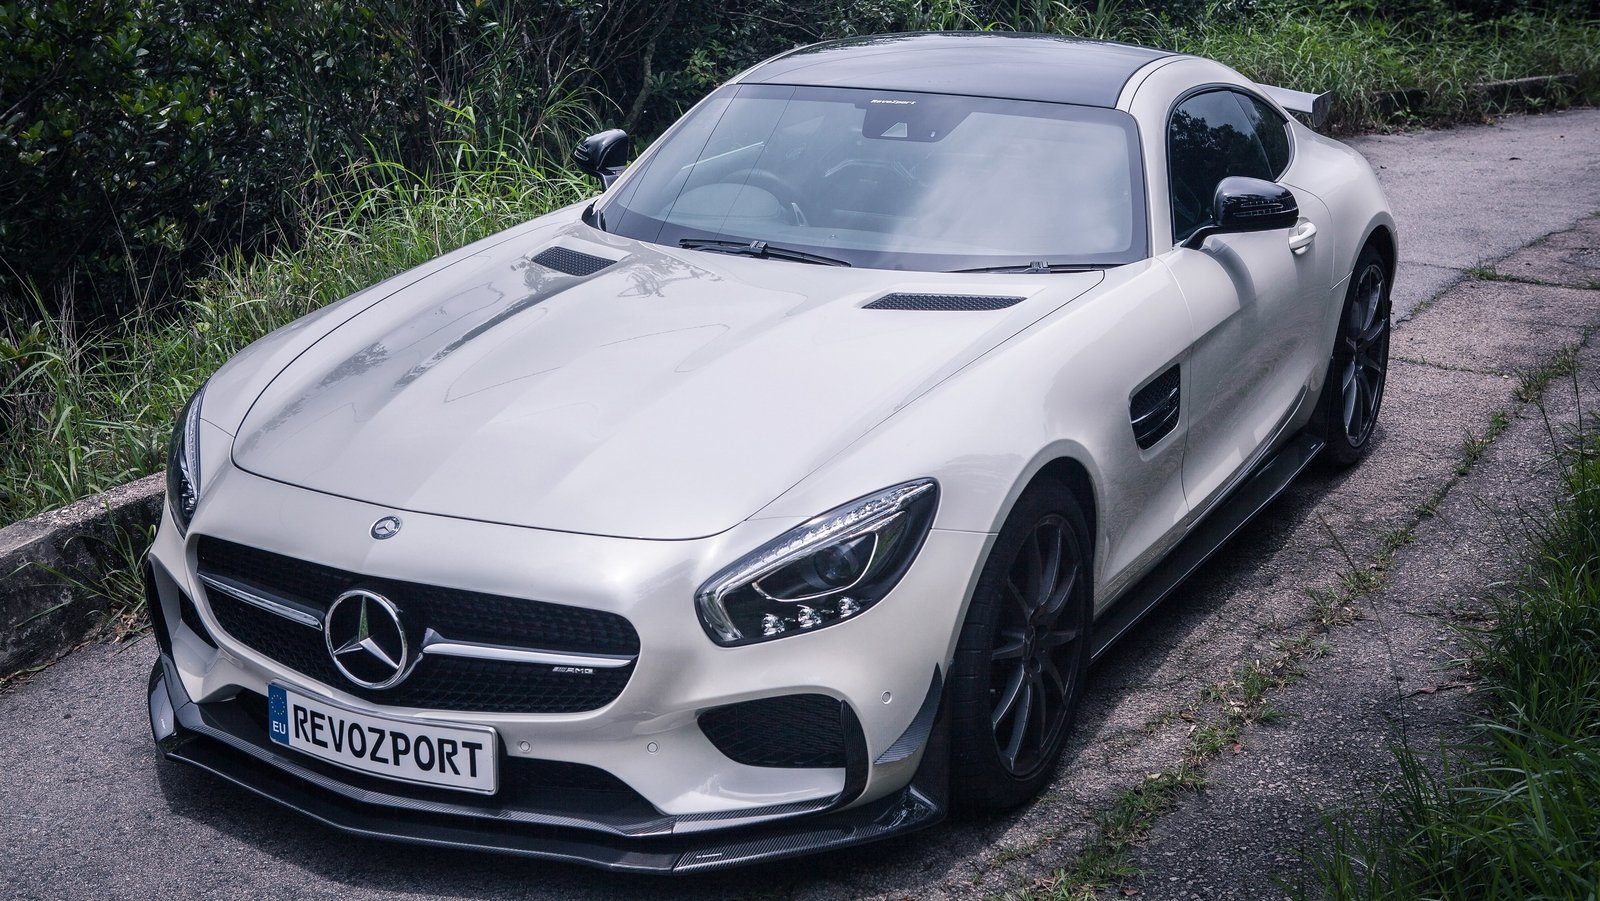 2016 mercedes amg gt s by revozport review top speed. Black Bedroom Furniture Sets. Home Design Ideas